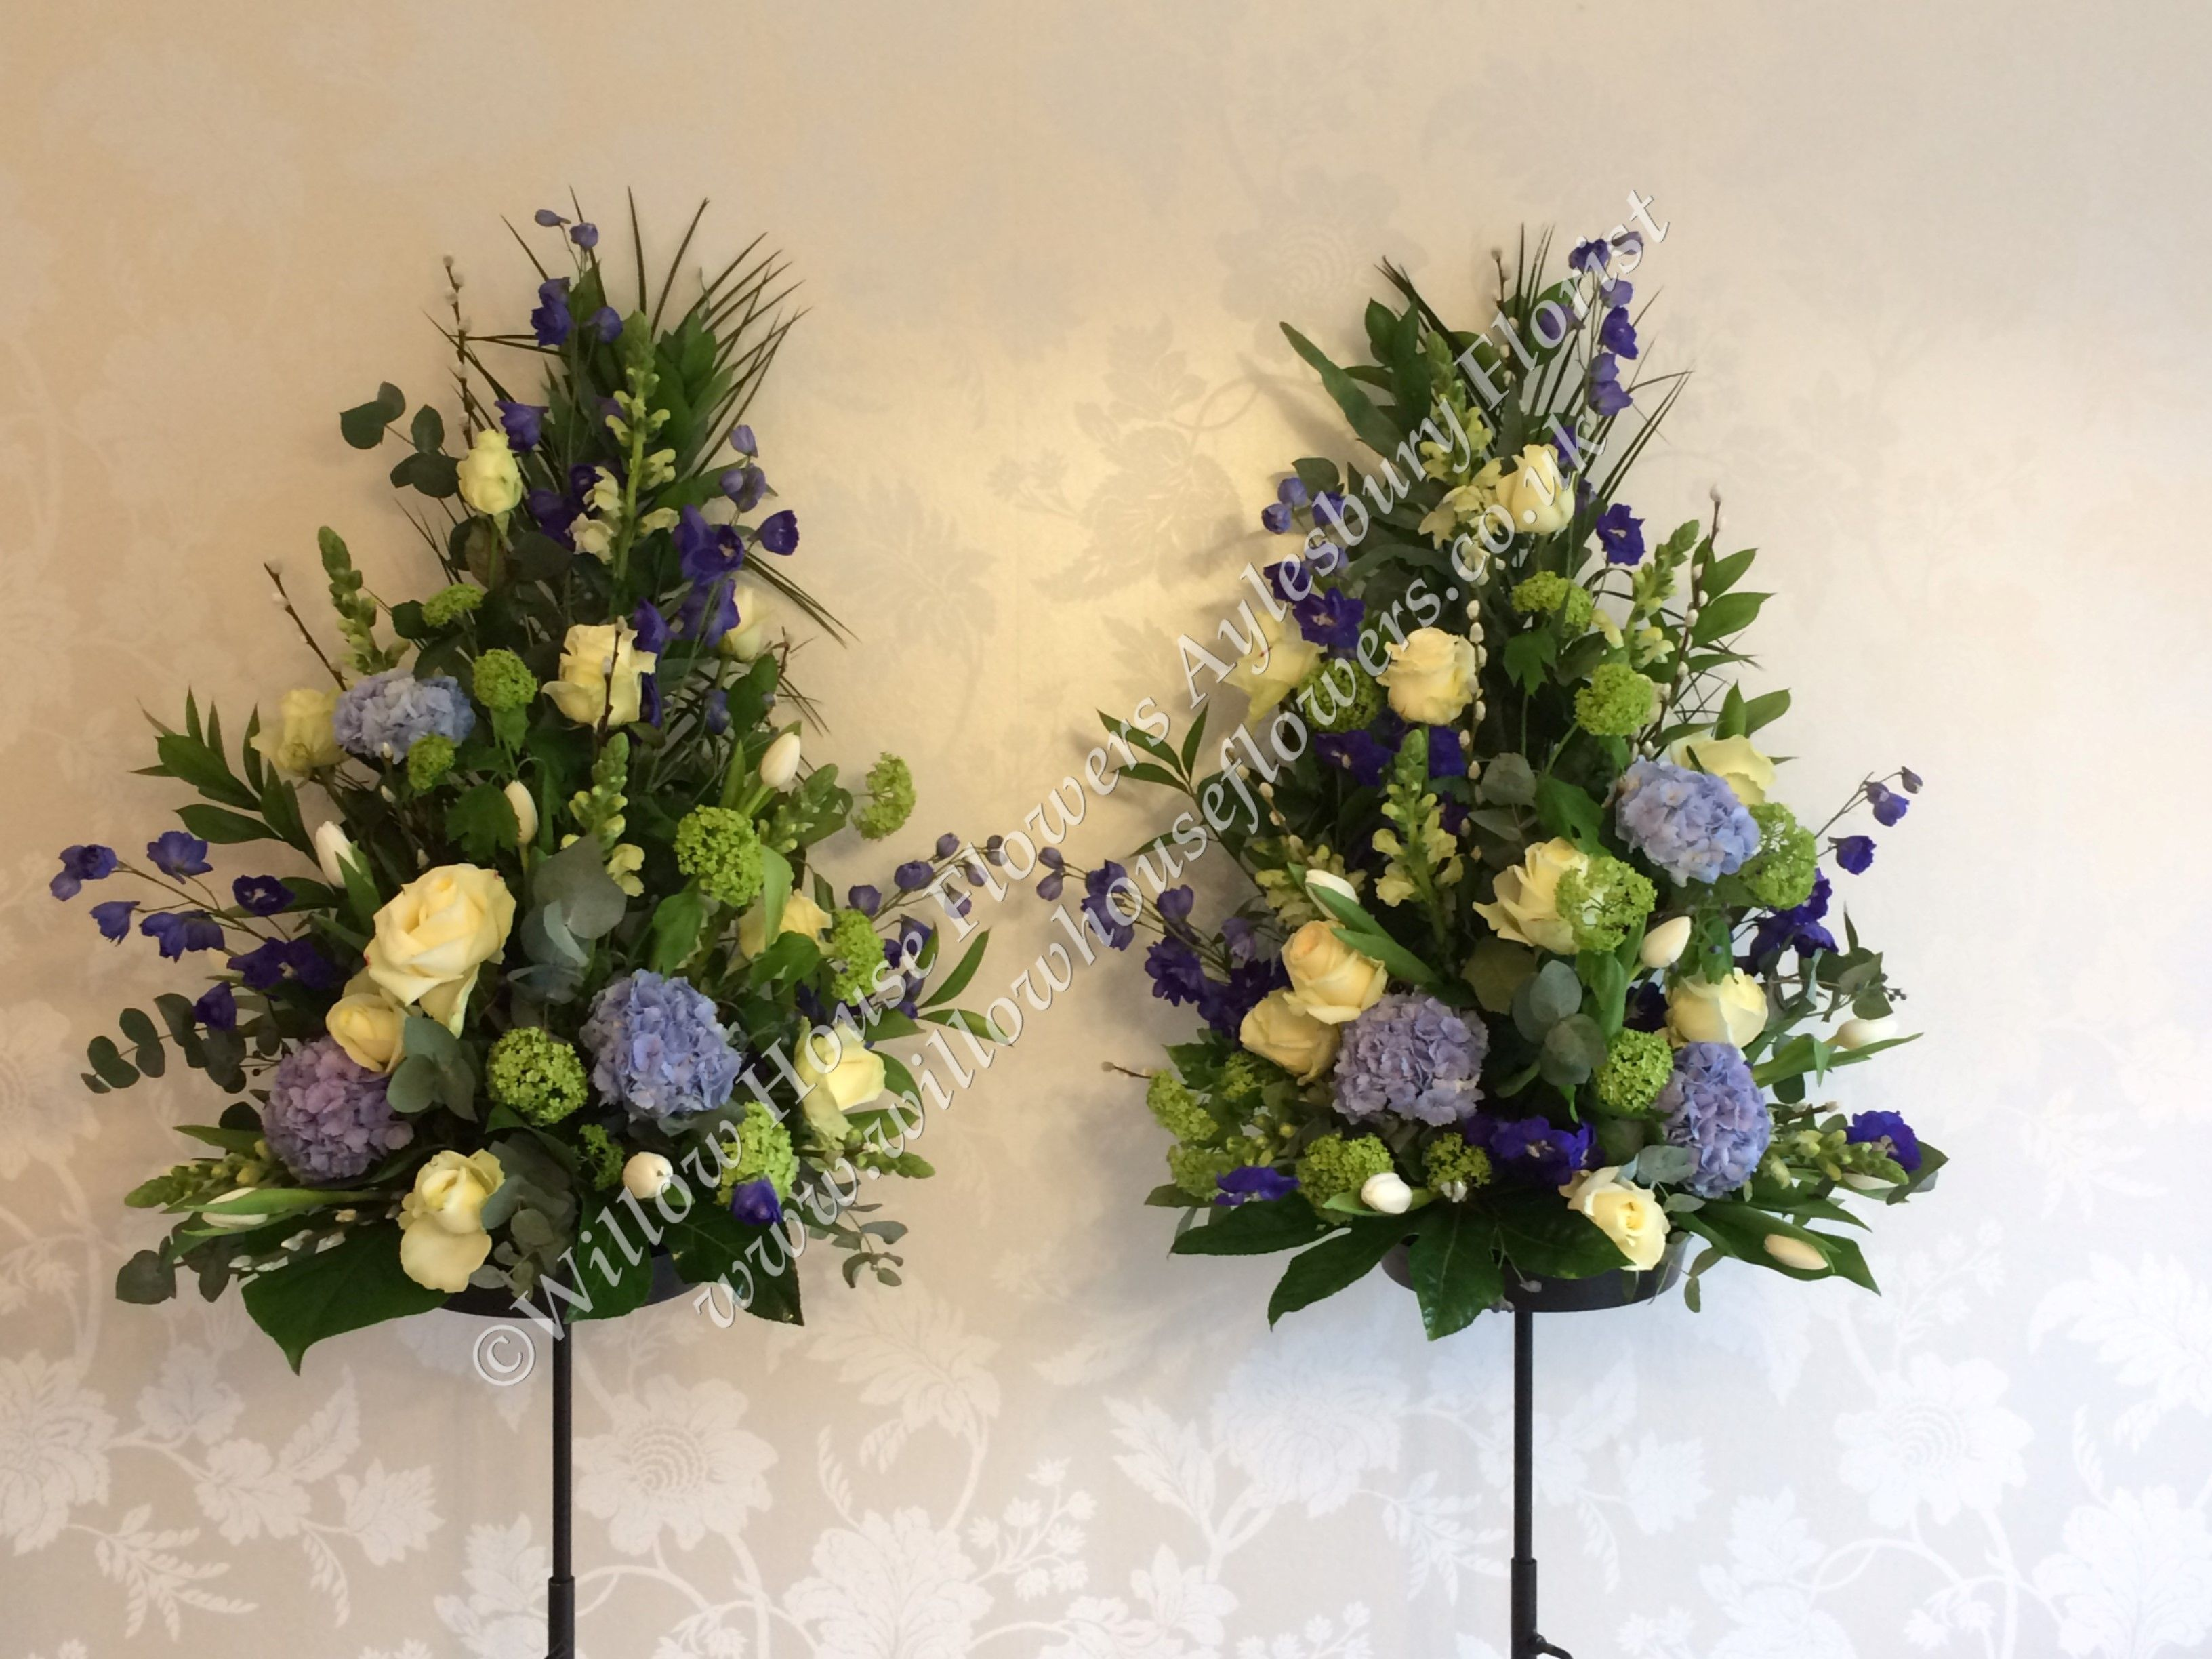 Fresh flower floral arrangement churchregistry office pedestal willow house flowers aylesbury florist free same day delivery in aylesbury bucks local on line florist for next day local delivery flowers bouquets izmirmasajfo